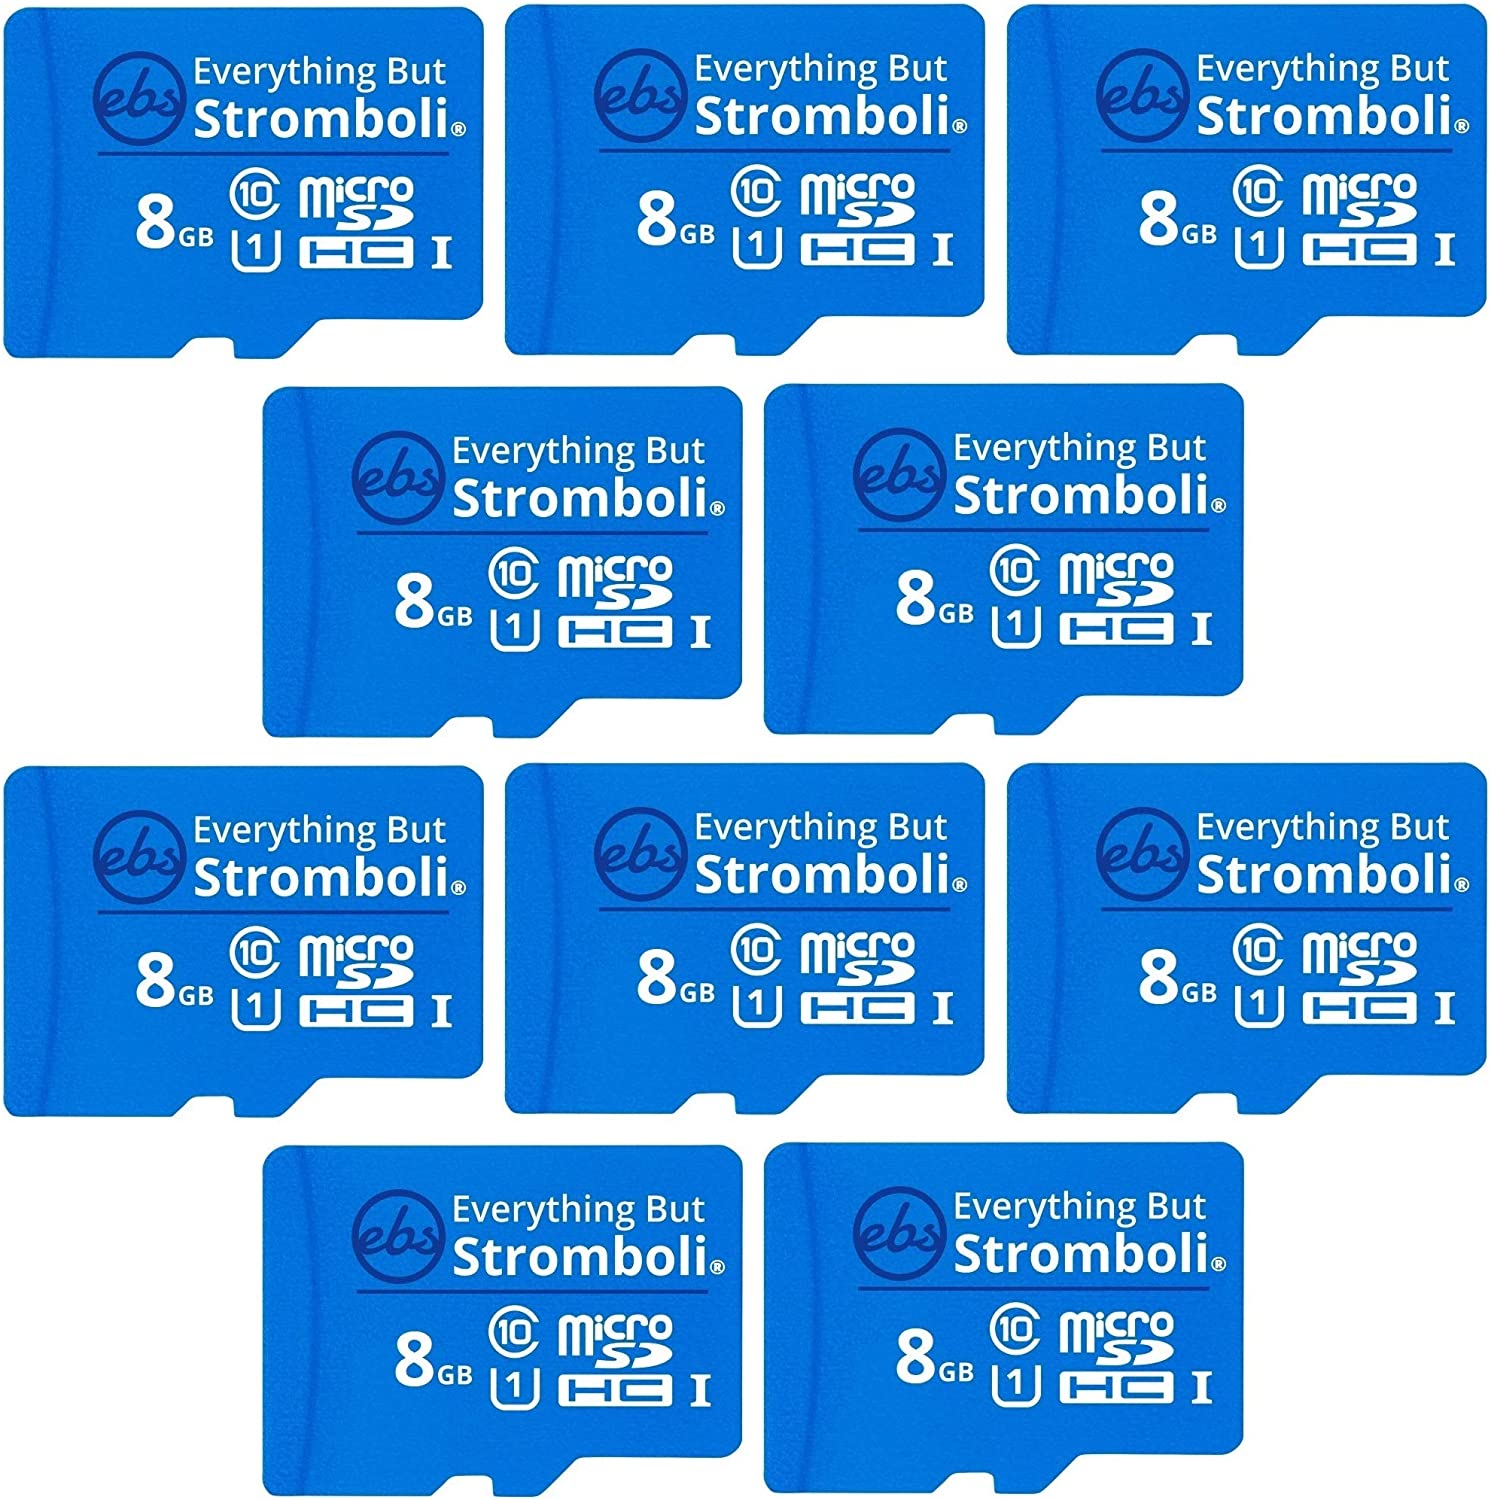 Everything But Stromboli 8GB MicroSD Memory Card Plus Adapter (10 Pack) Class 10, U1, UHS-1, TF Bulk Micro SD Cards for Compatible Dash Cam, GPS, Home Security Cam, Computer, Raspberry Pi, GPS Device